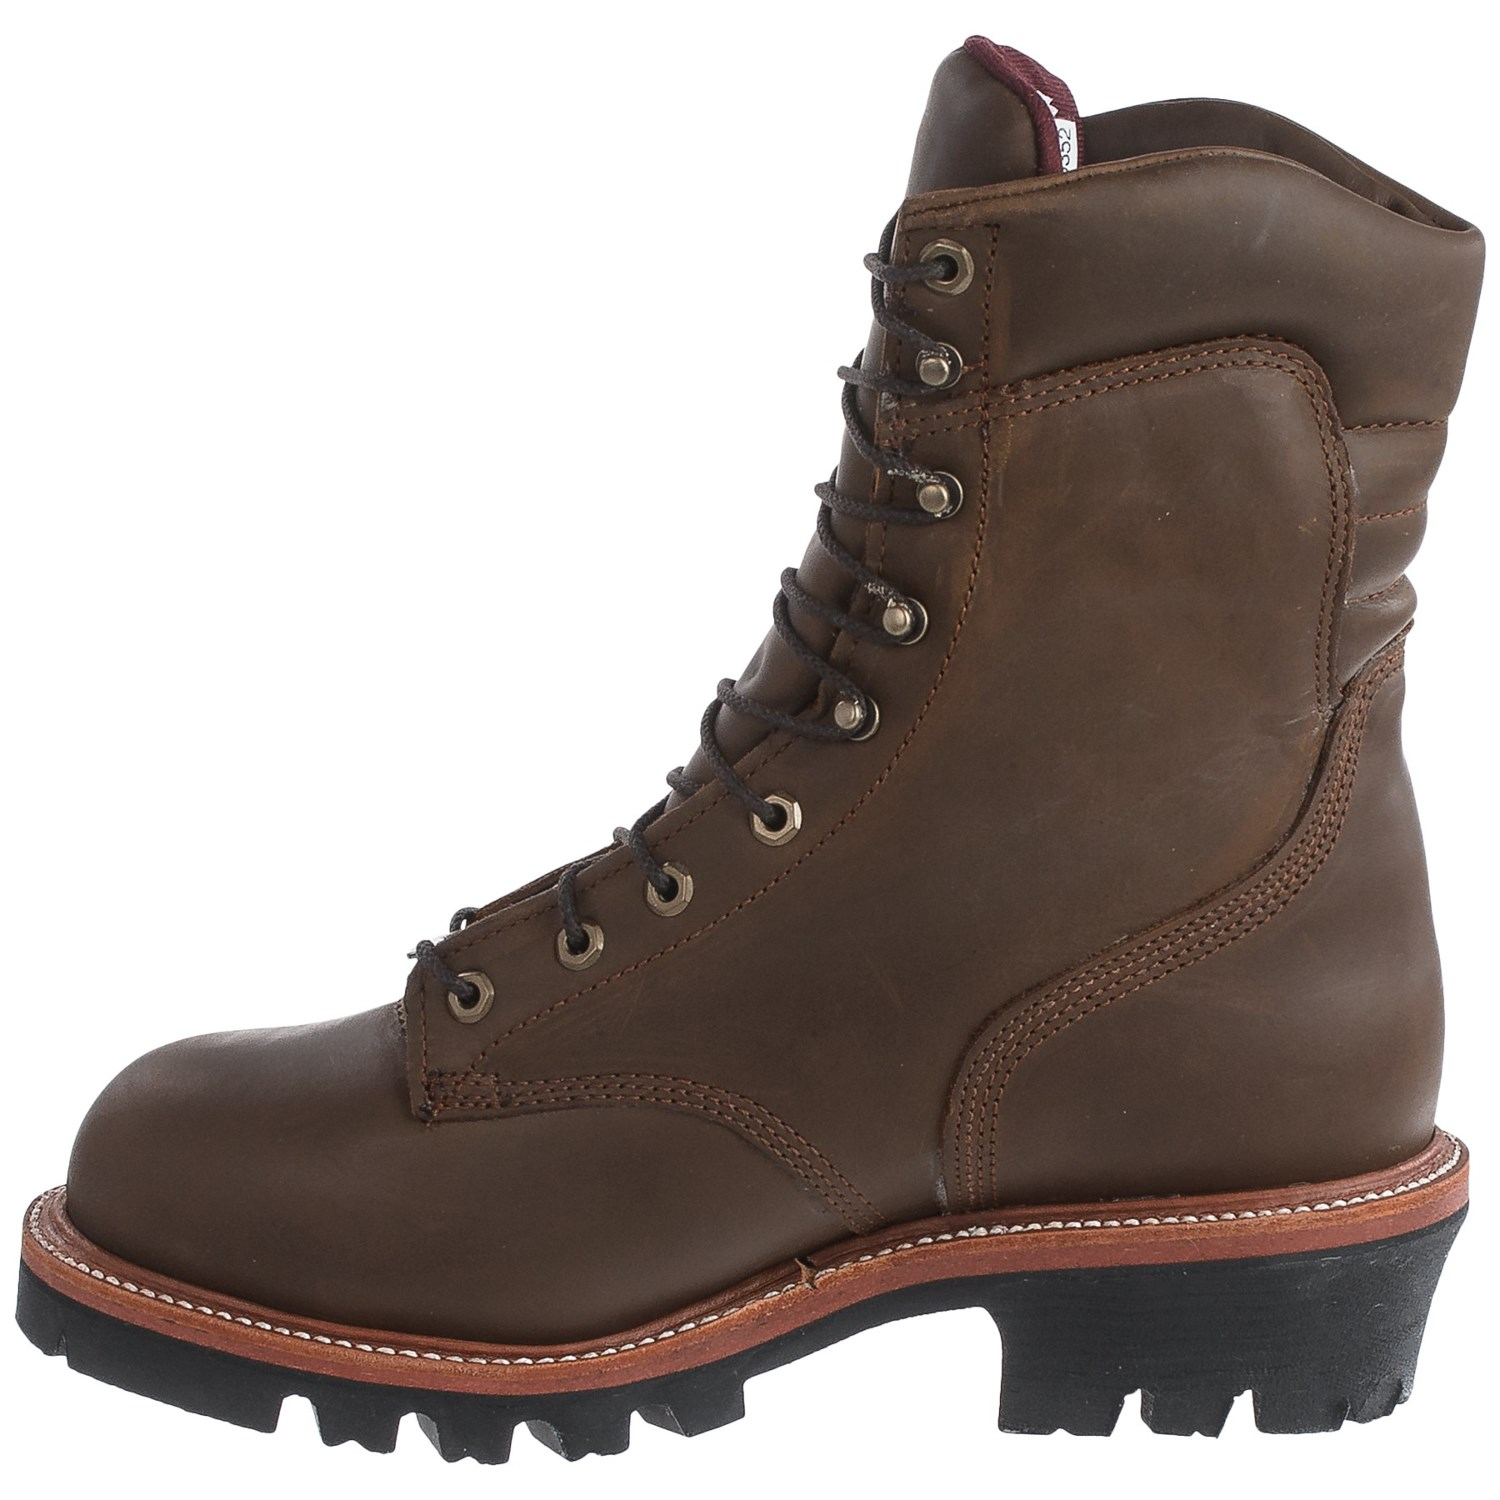 Chippewa Super Logger Steel Toe Work Boots (For Men) - Save 42%